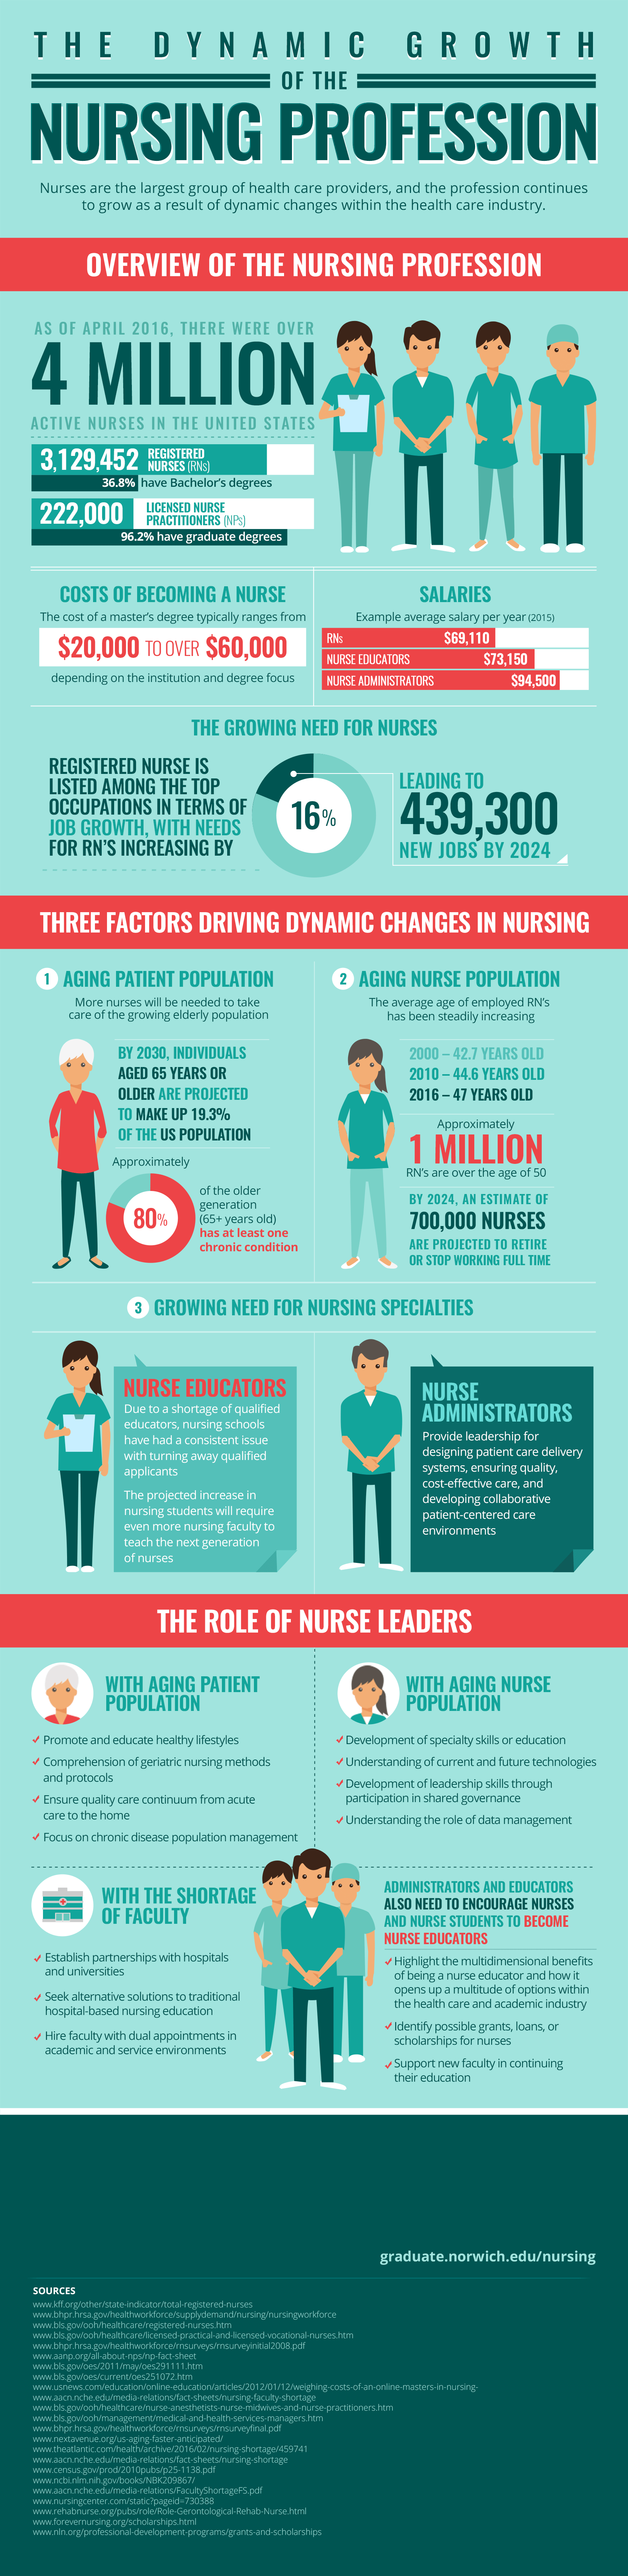 infographic on the growth in the nursing profession